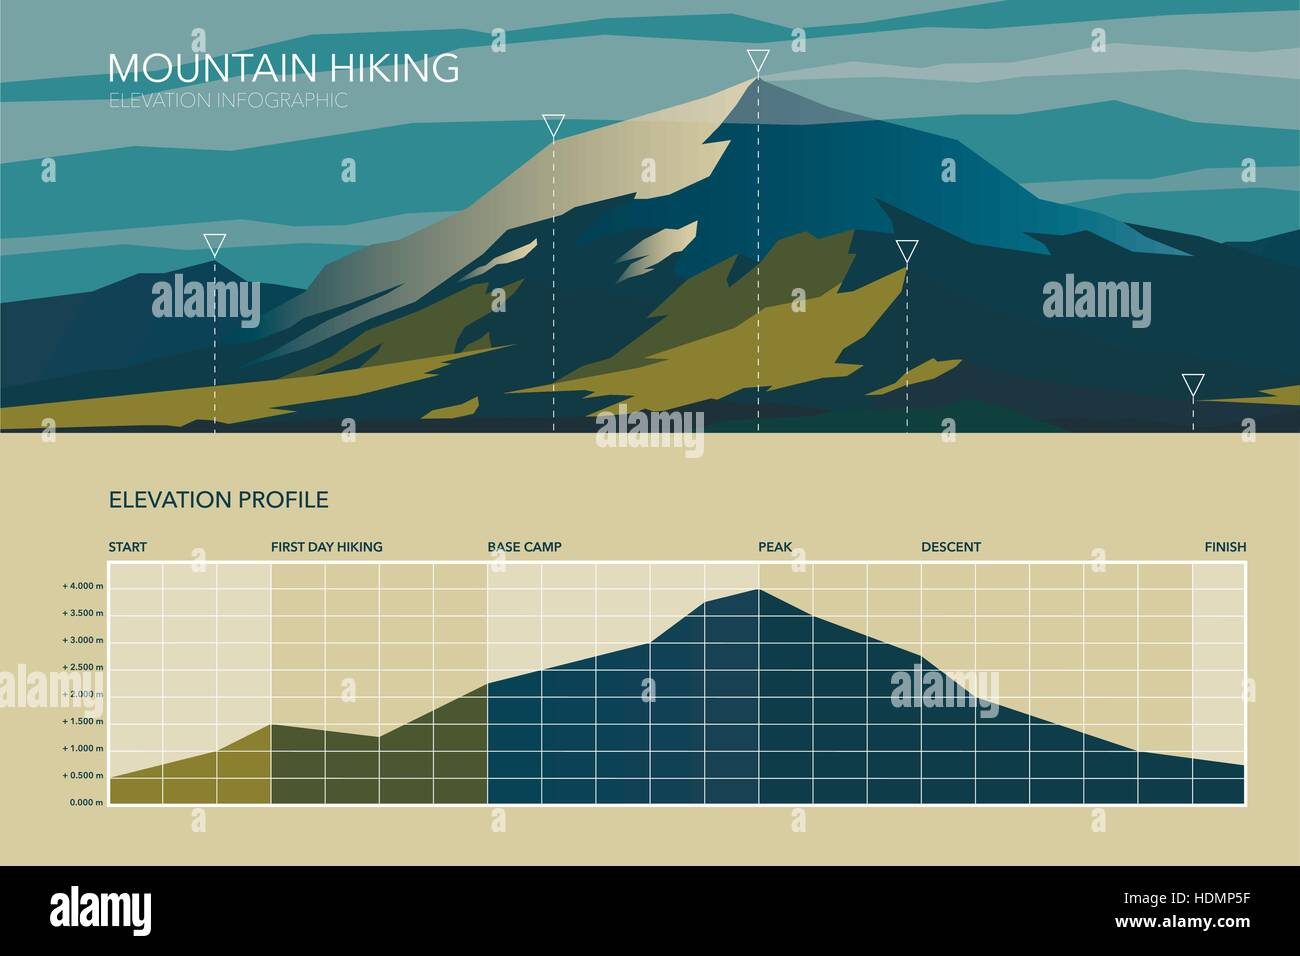 High mountain landscape infographic. Elevation profile. Wilderness. Spectacular view. Vector illustration. - Stock Vector